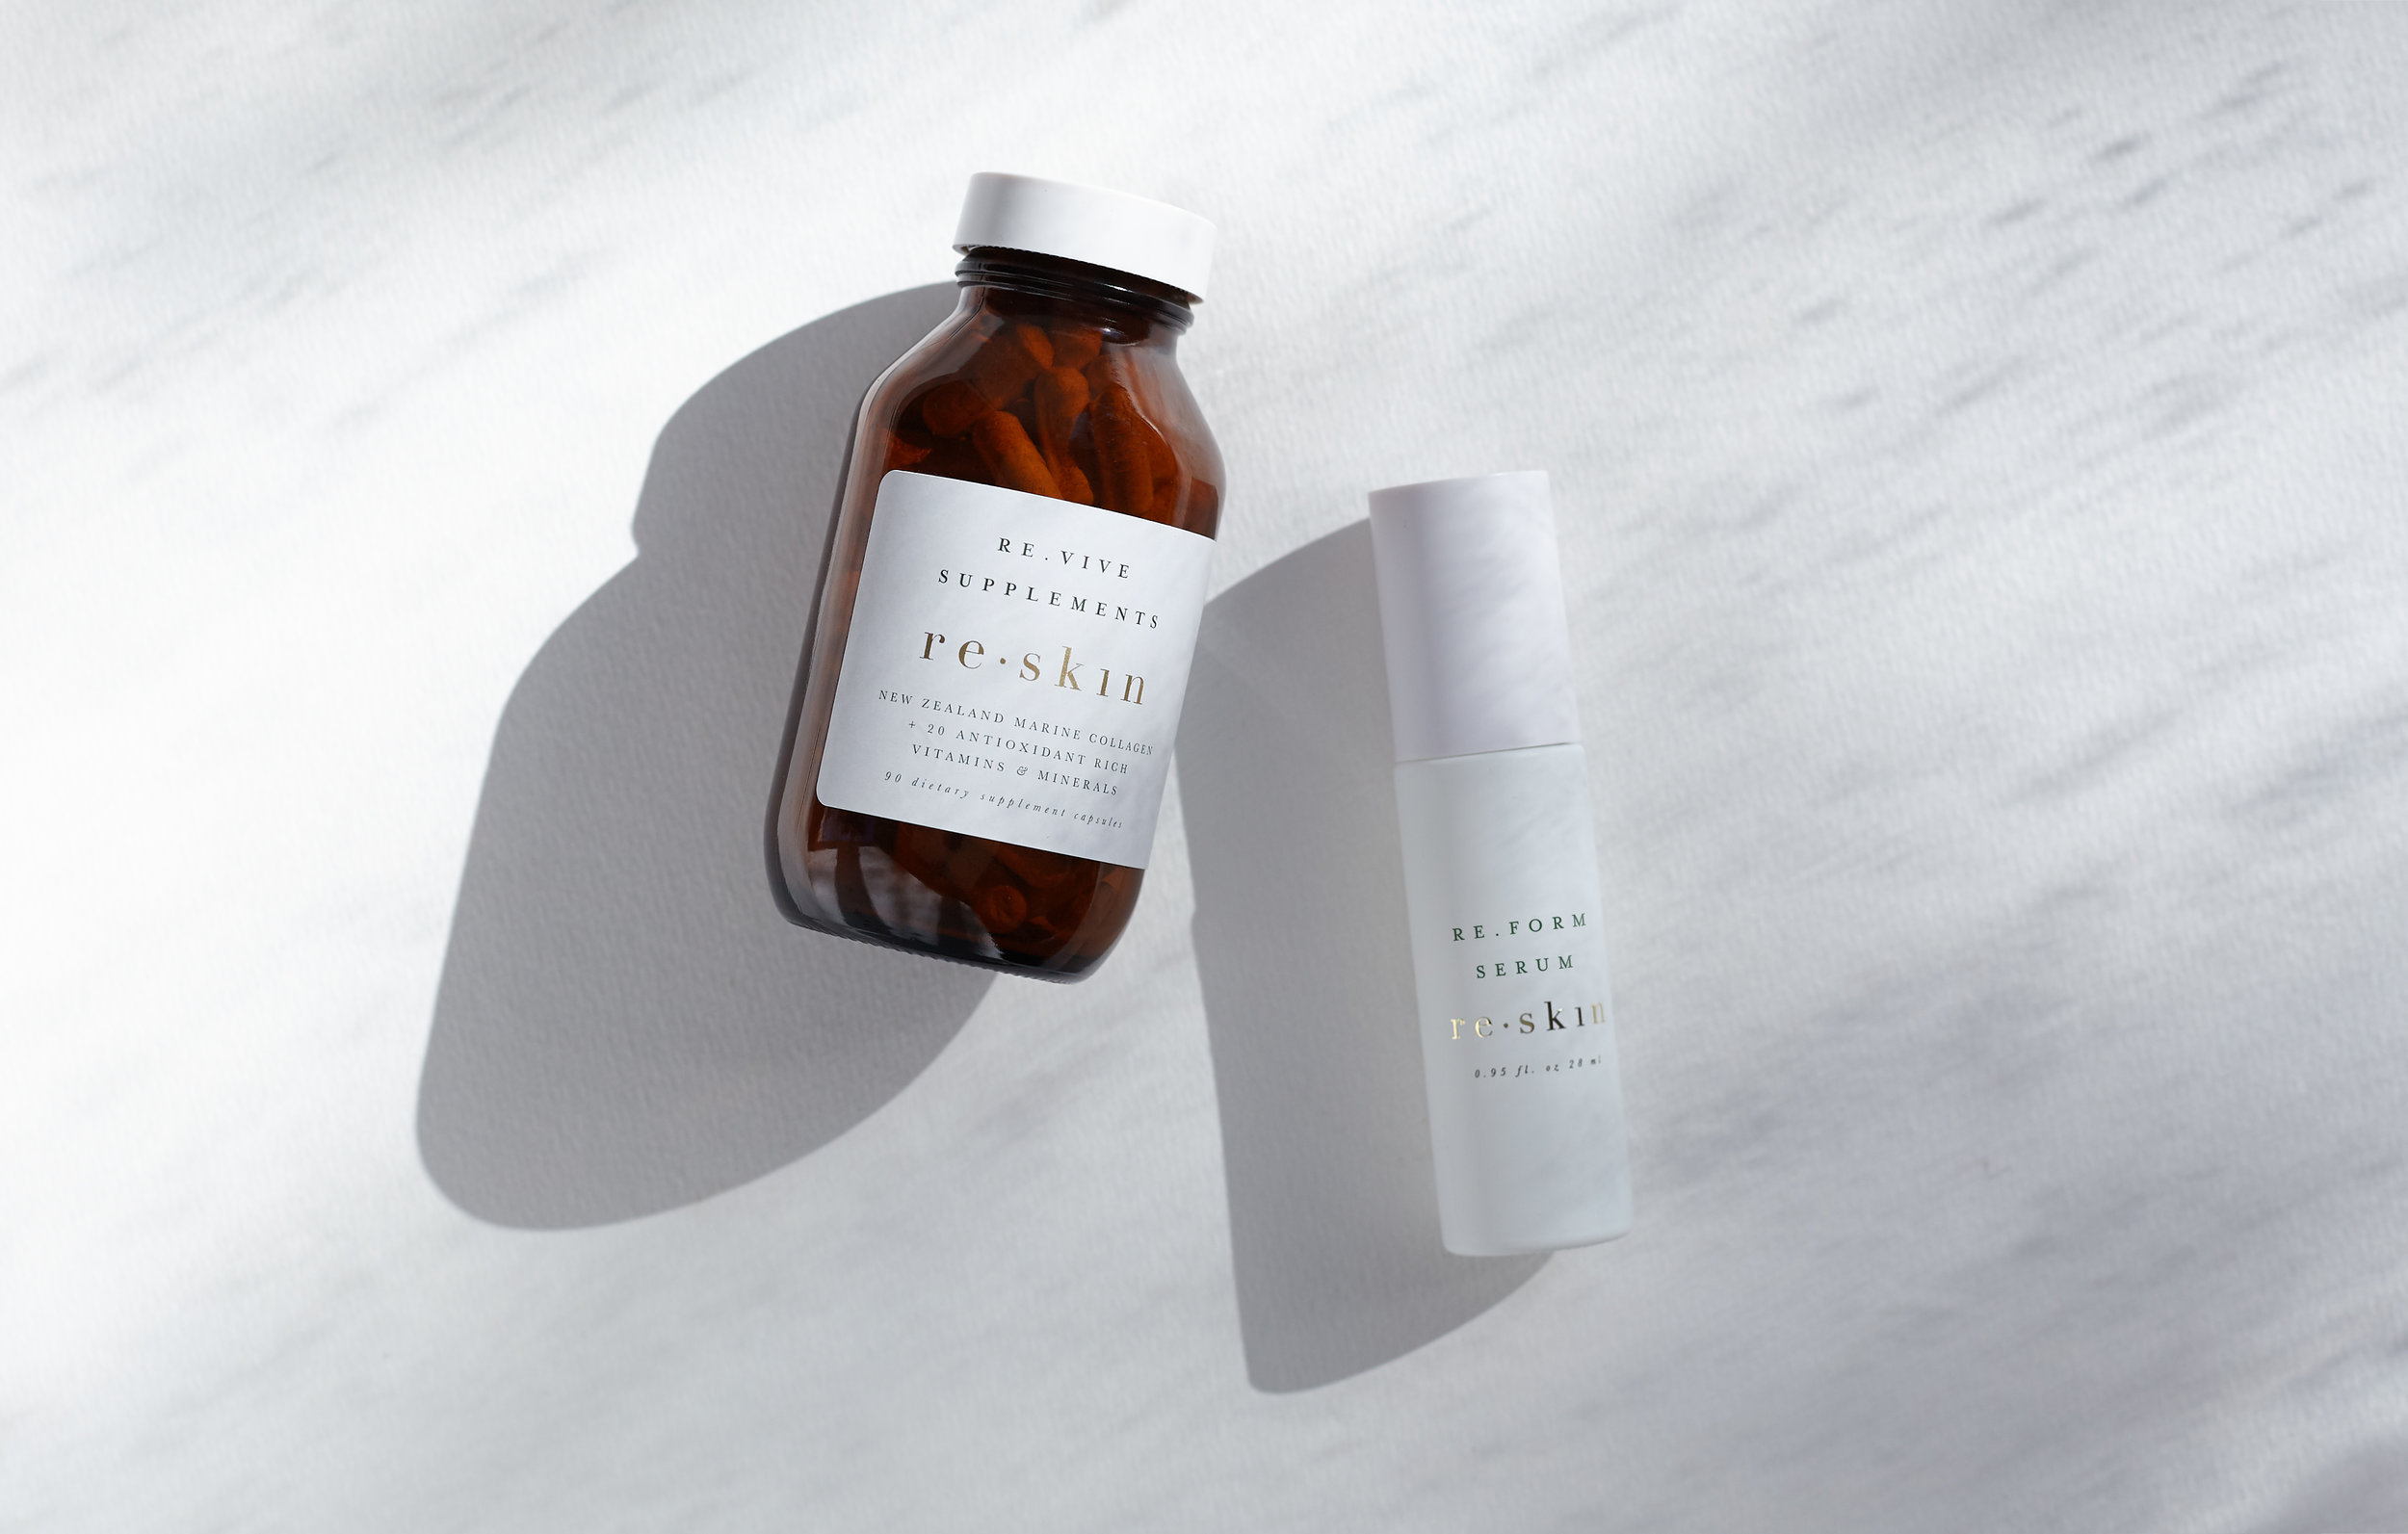 100% Recyclable packaging  Our hero ingredient: New Zealand Marine Collagen - sustainably sourced in NZ  No chemicals  No fillers  No nasties in our products  No testing on animals